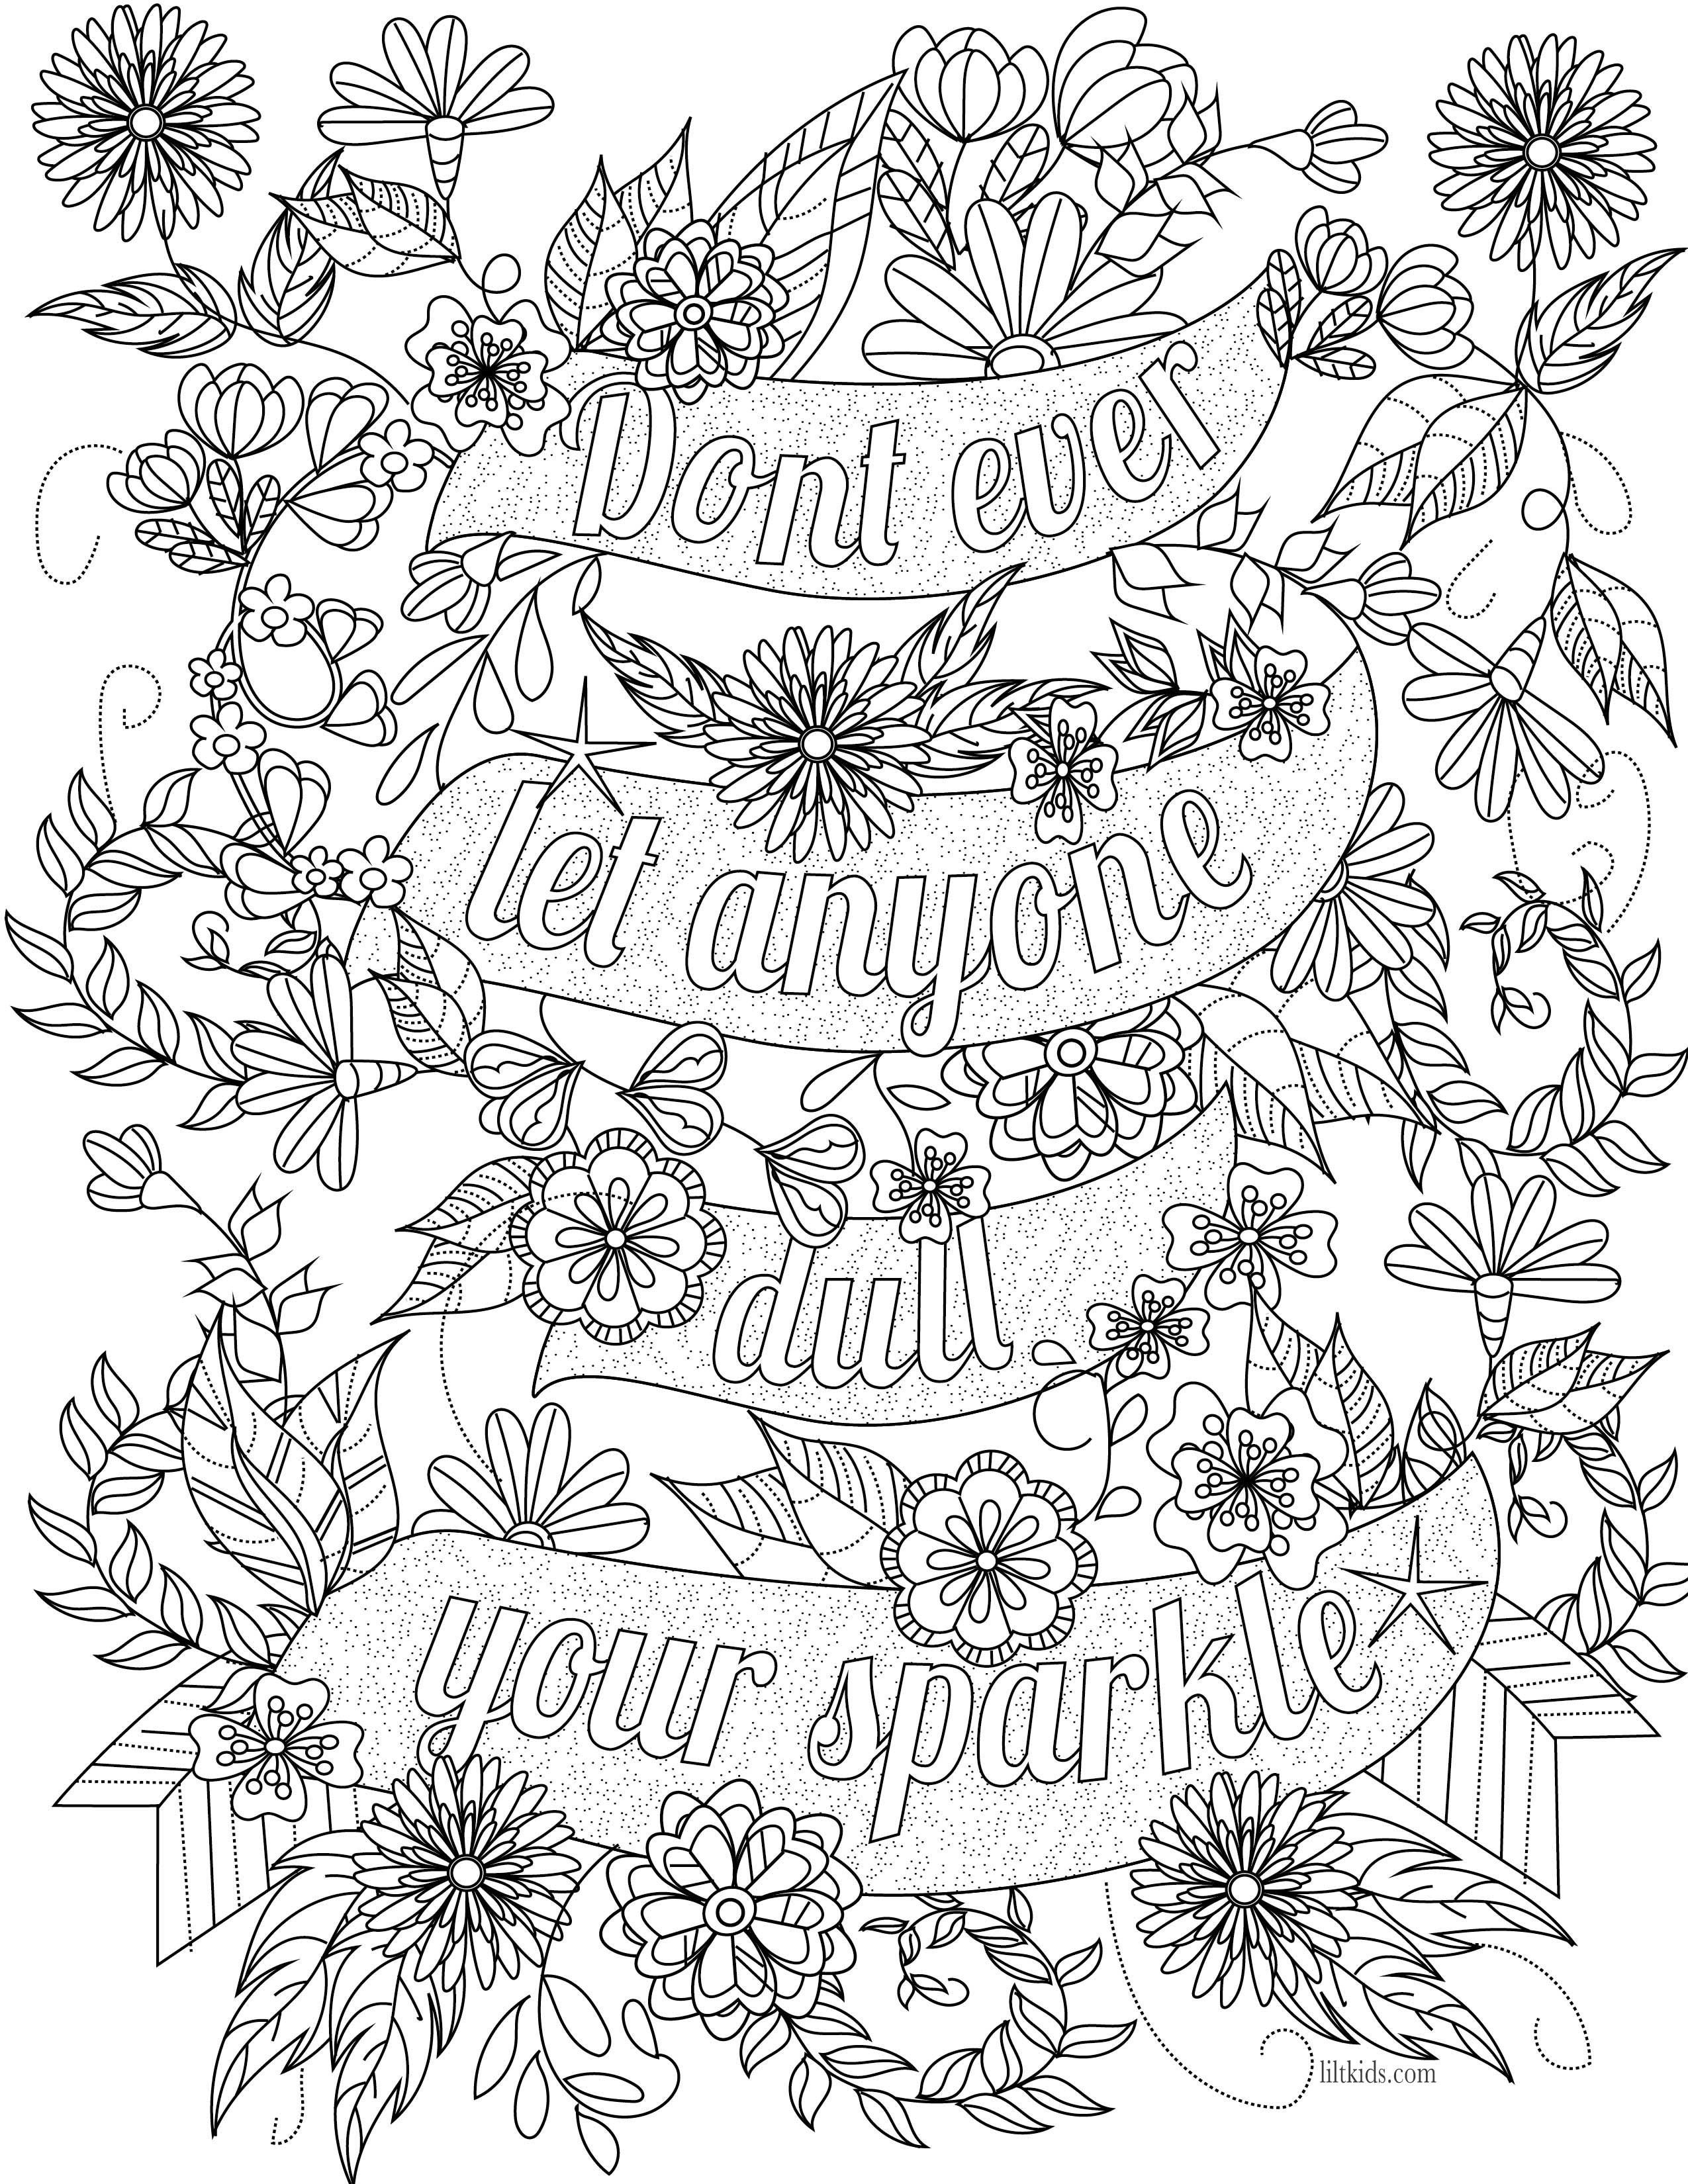 Free Inspirational Quote Adult Coloring Book Image From Liltkids - Free Printable Inspirational Coloring Pages